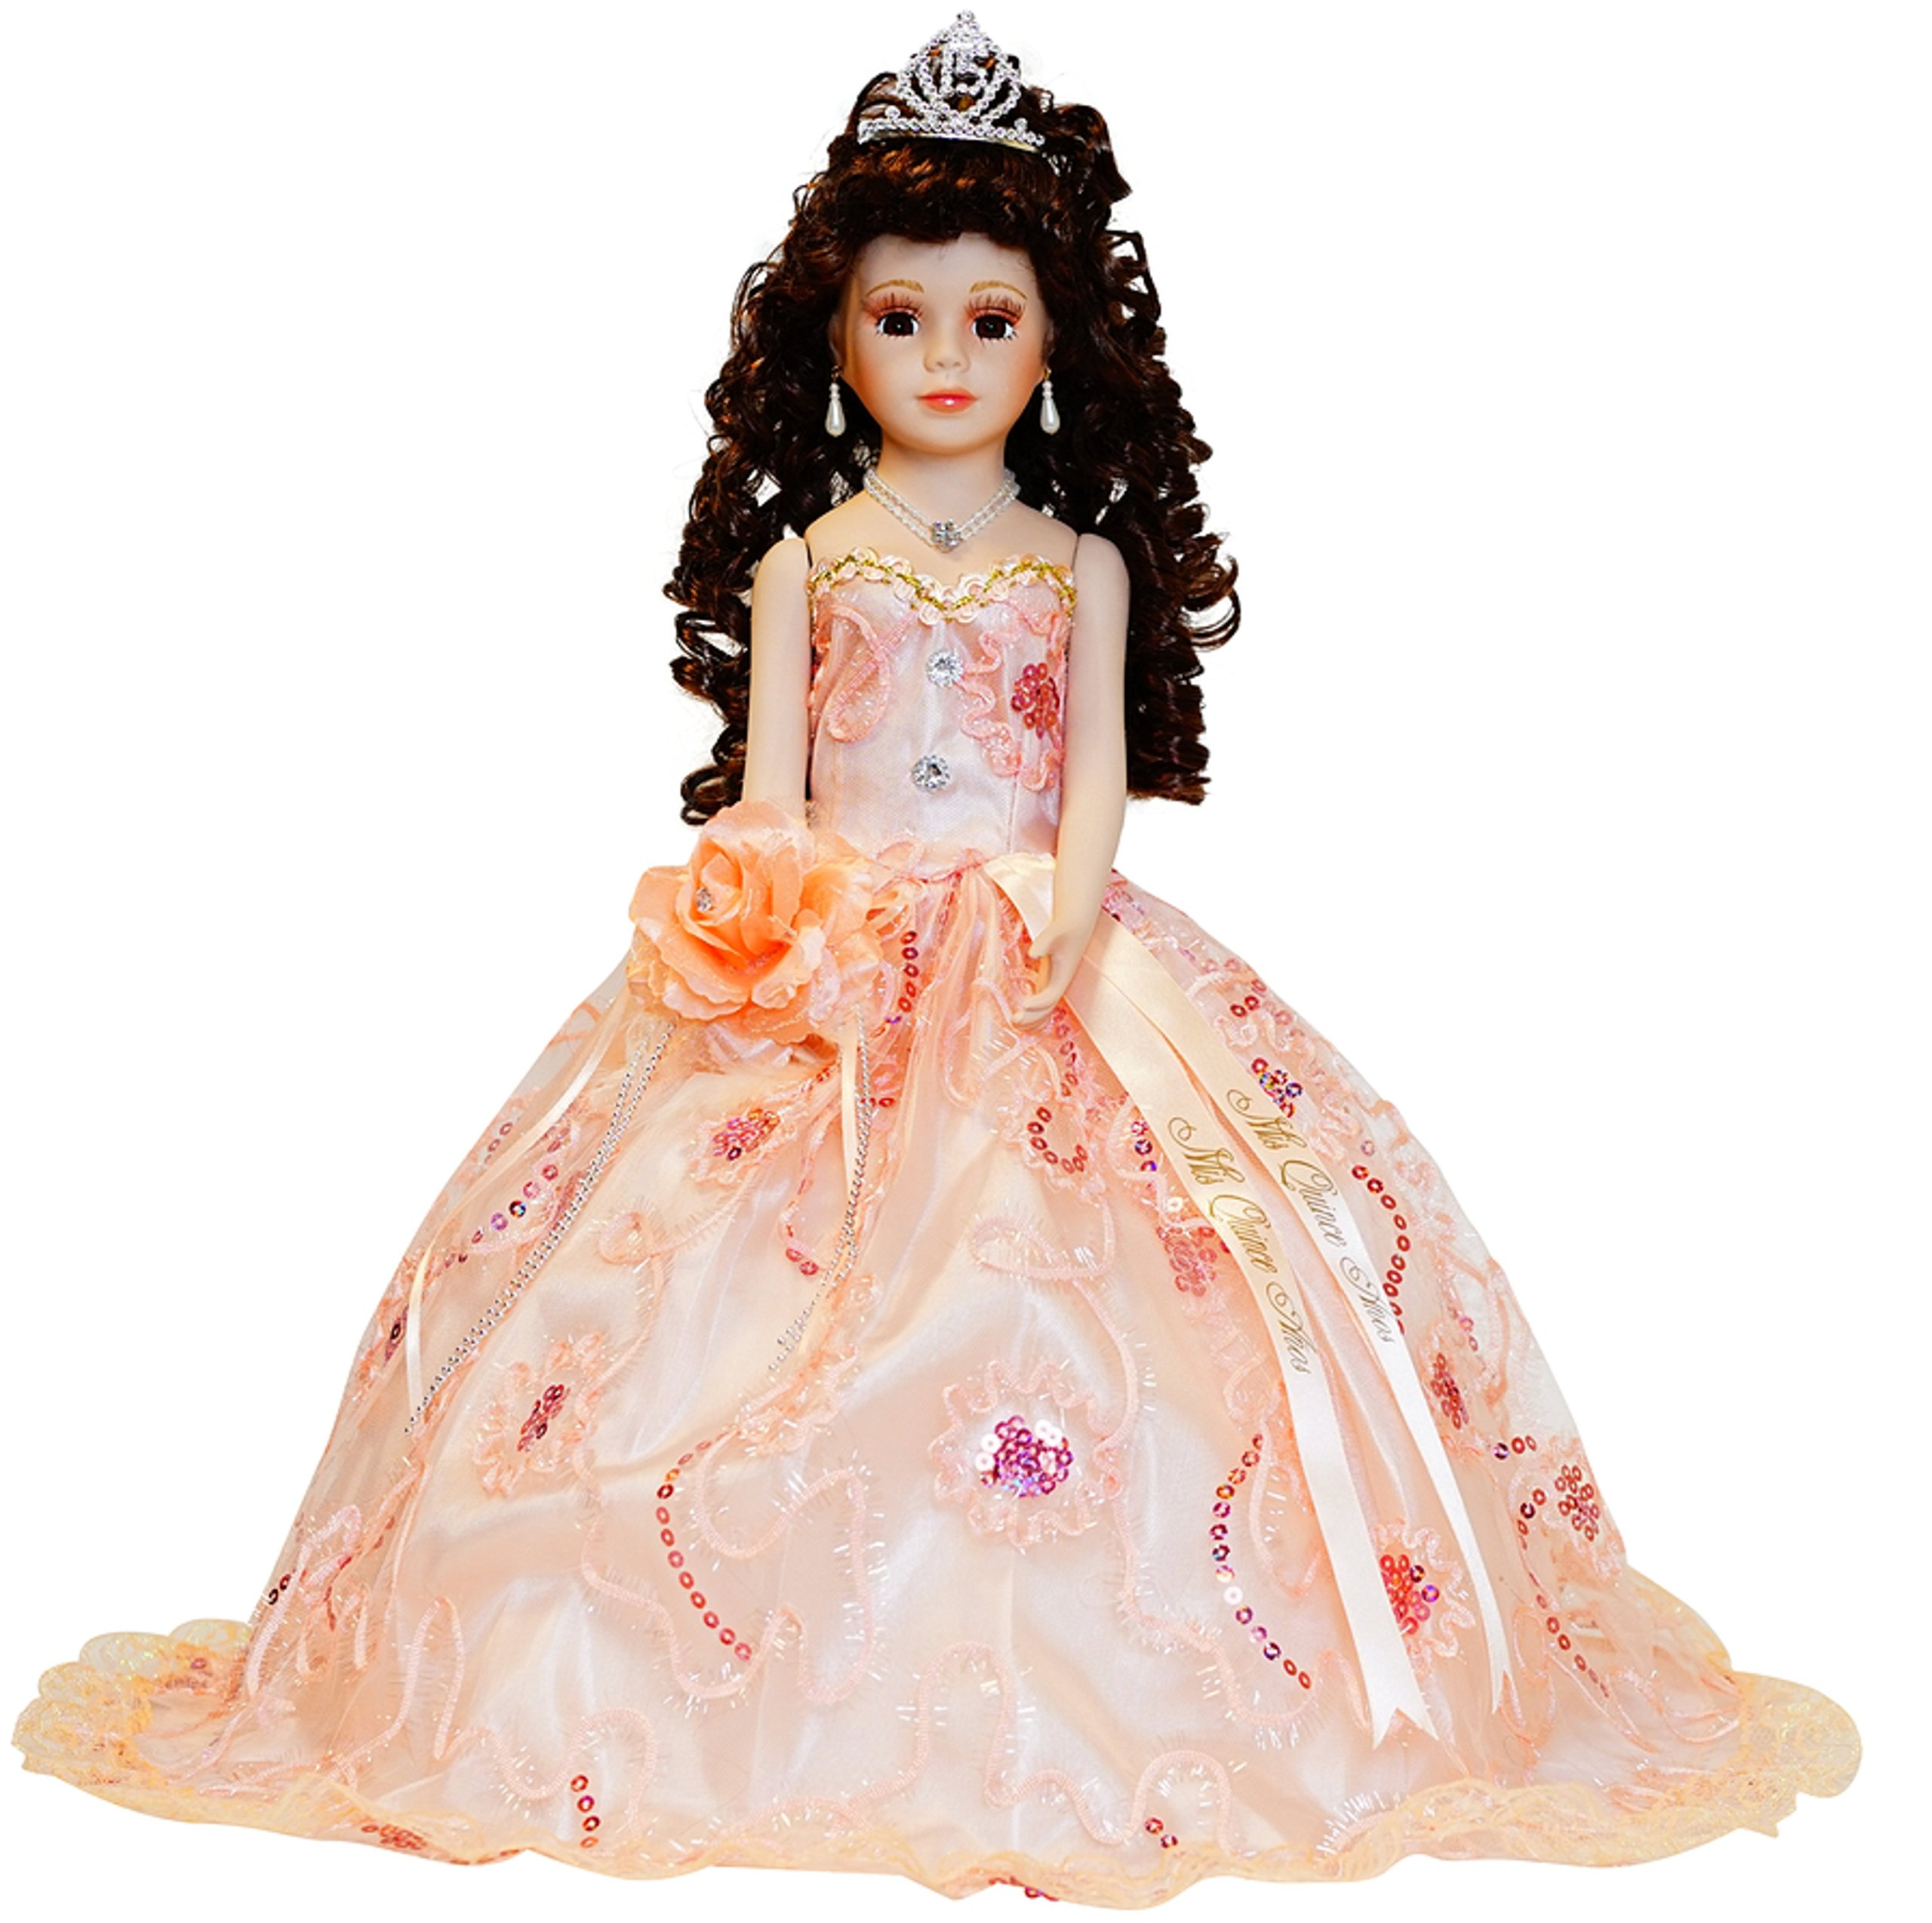 Kinnex Collections by Amanda 18'' Porcelain Quinceanera Umbrella Doll (Table Centerpiece)~ Peach~ KK18725-28 by Kinnex Collections by Amanda (Image #2)